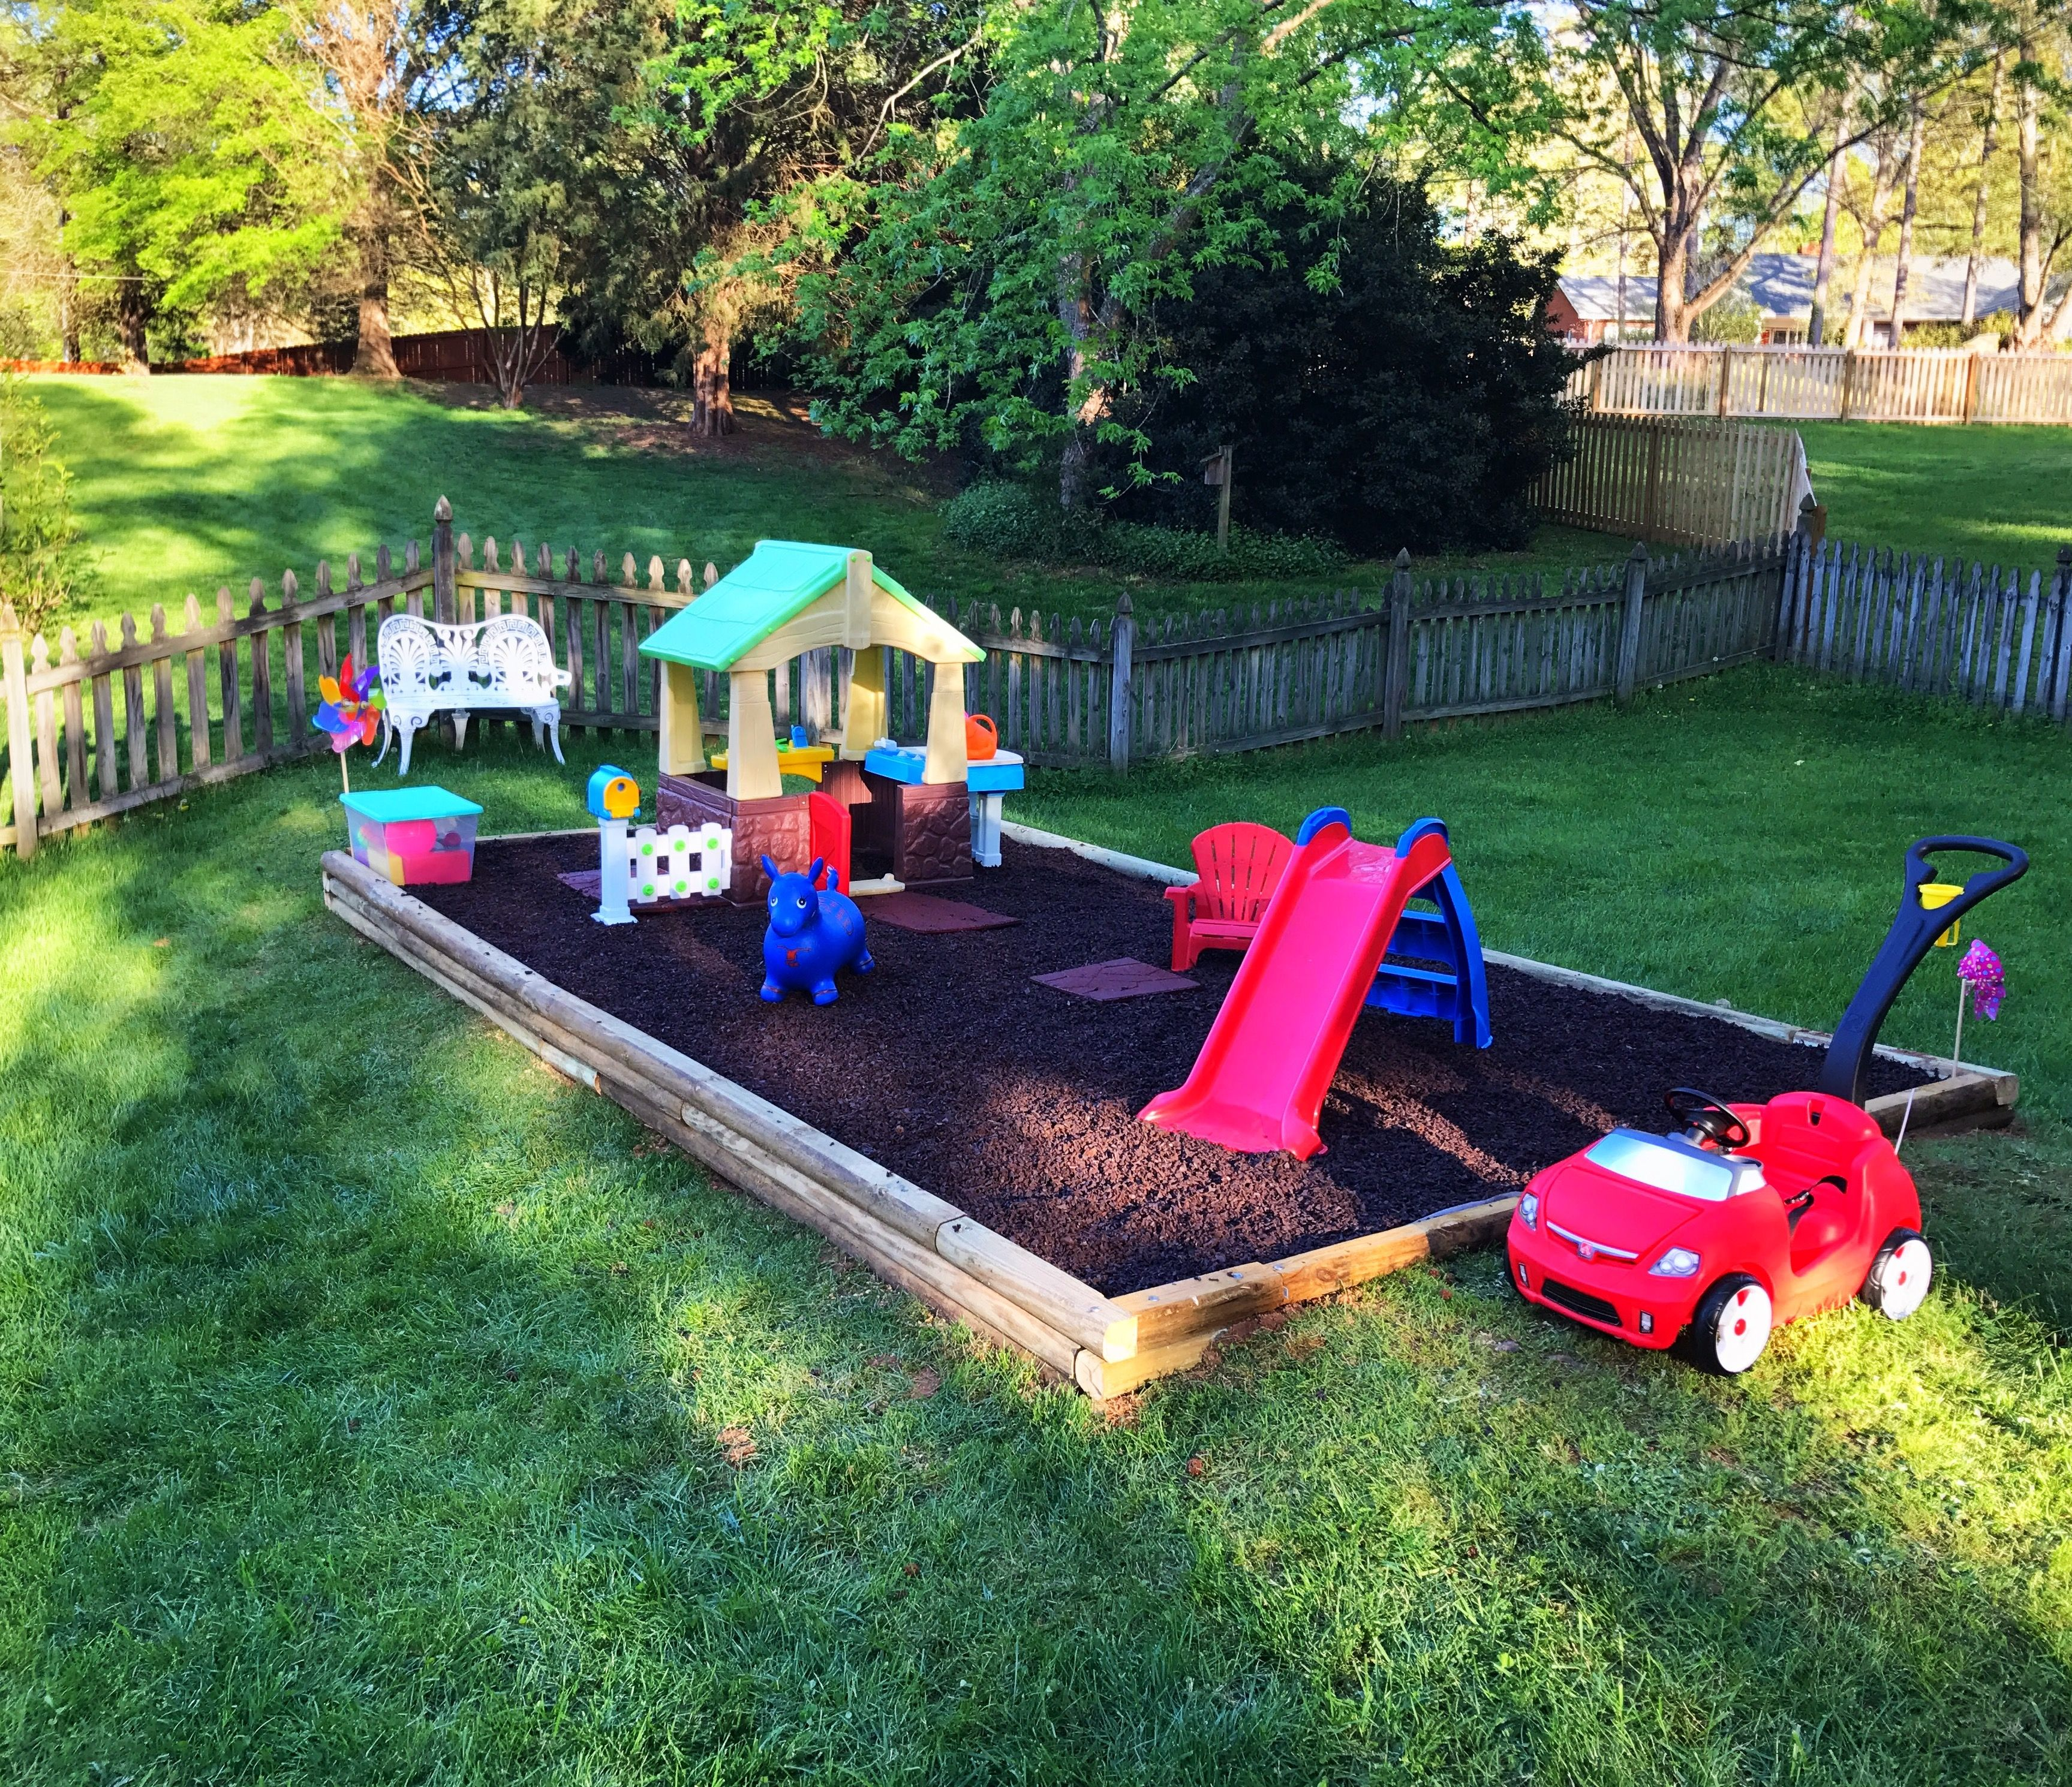 Outdoor Play Area For Toddler Outdoor Kids Play Area Toddler